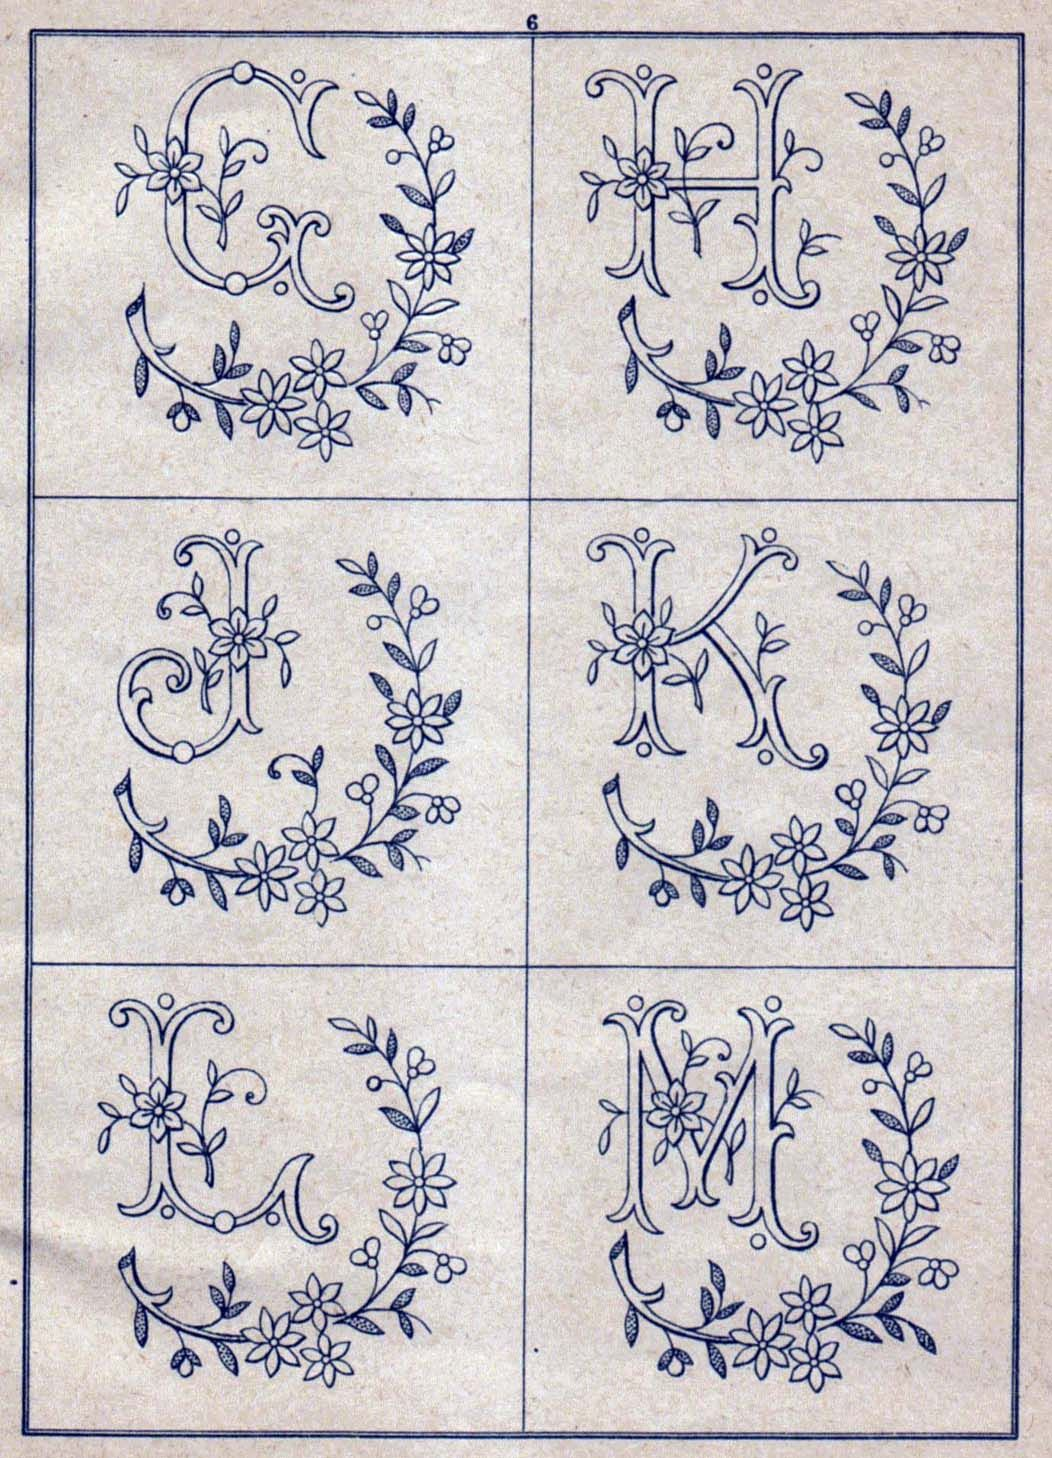 Free easy cross pattern maker pcstitch charts free historic free easy cross pattern maker pcstitch charts free historic old pattern books embroidery bankloansurffo Image collections